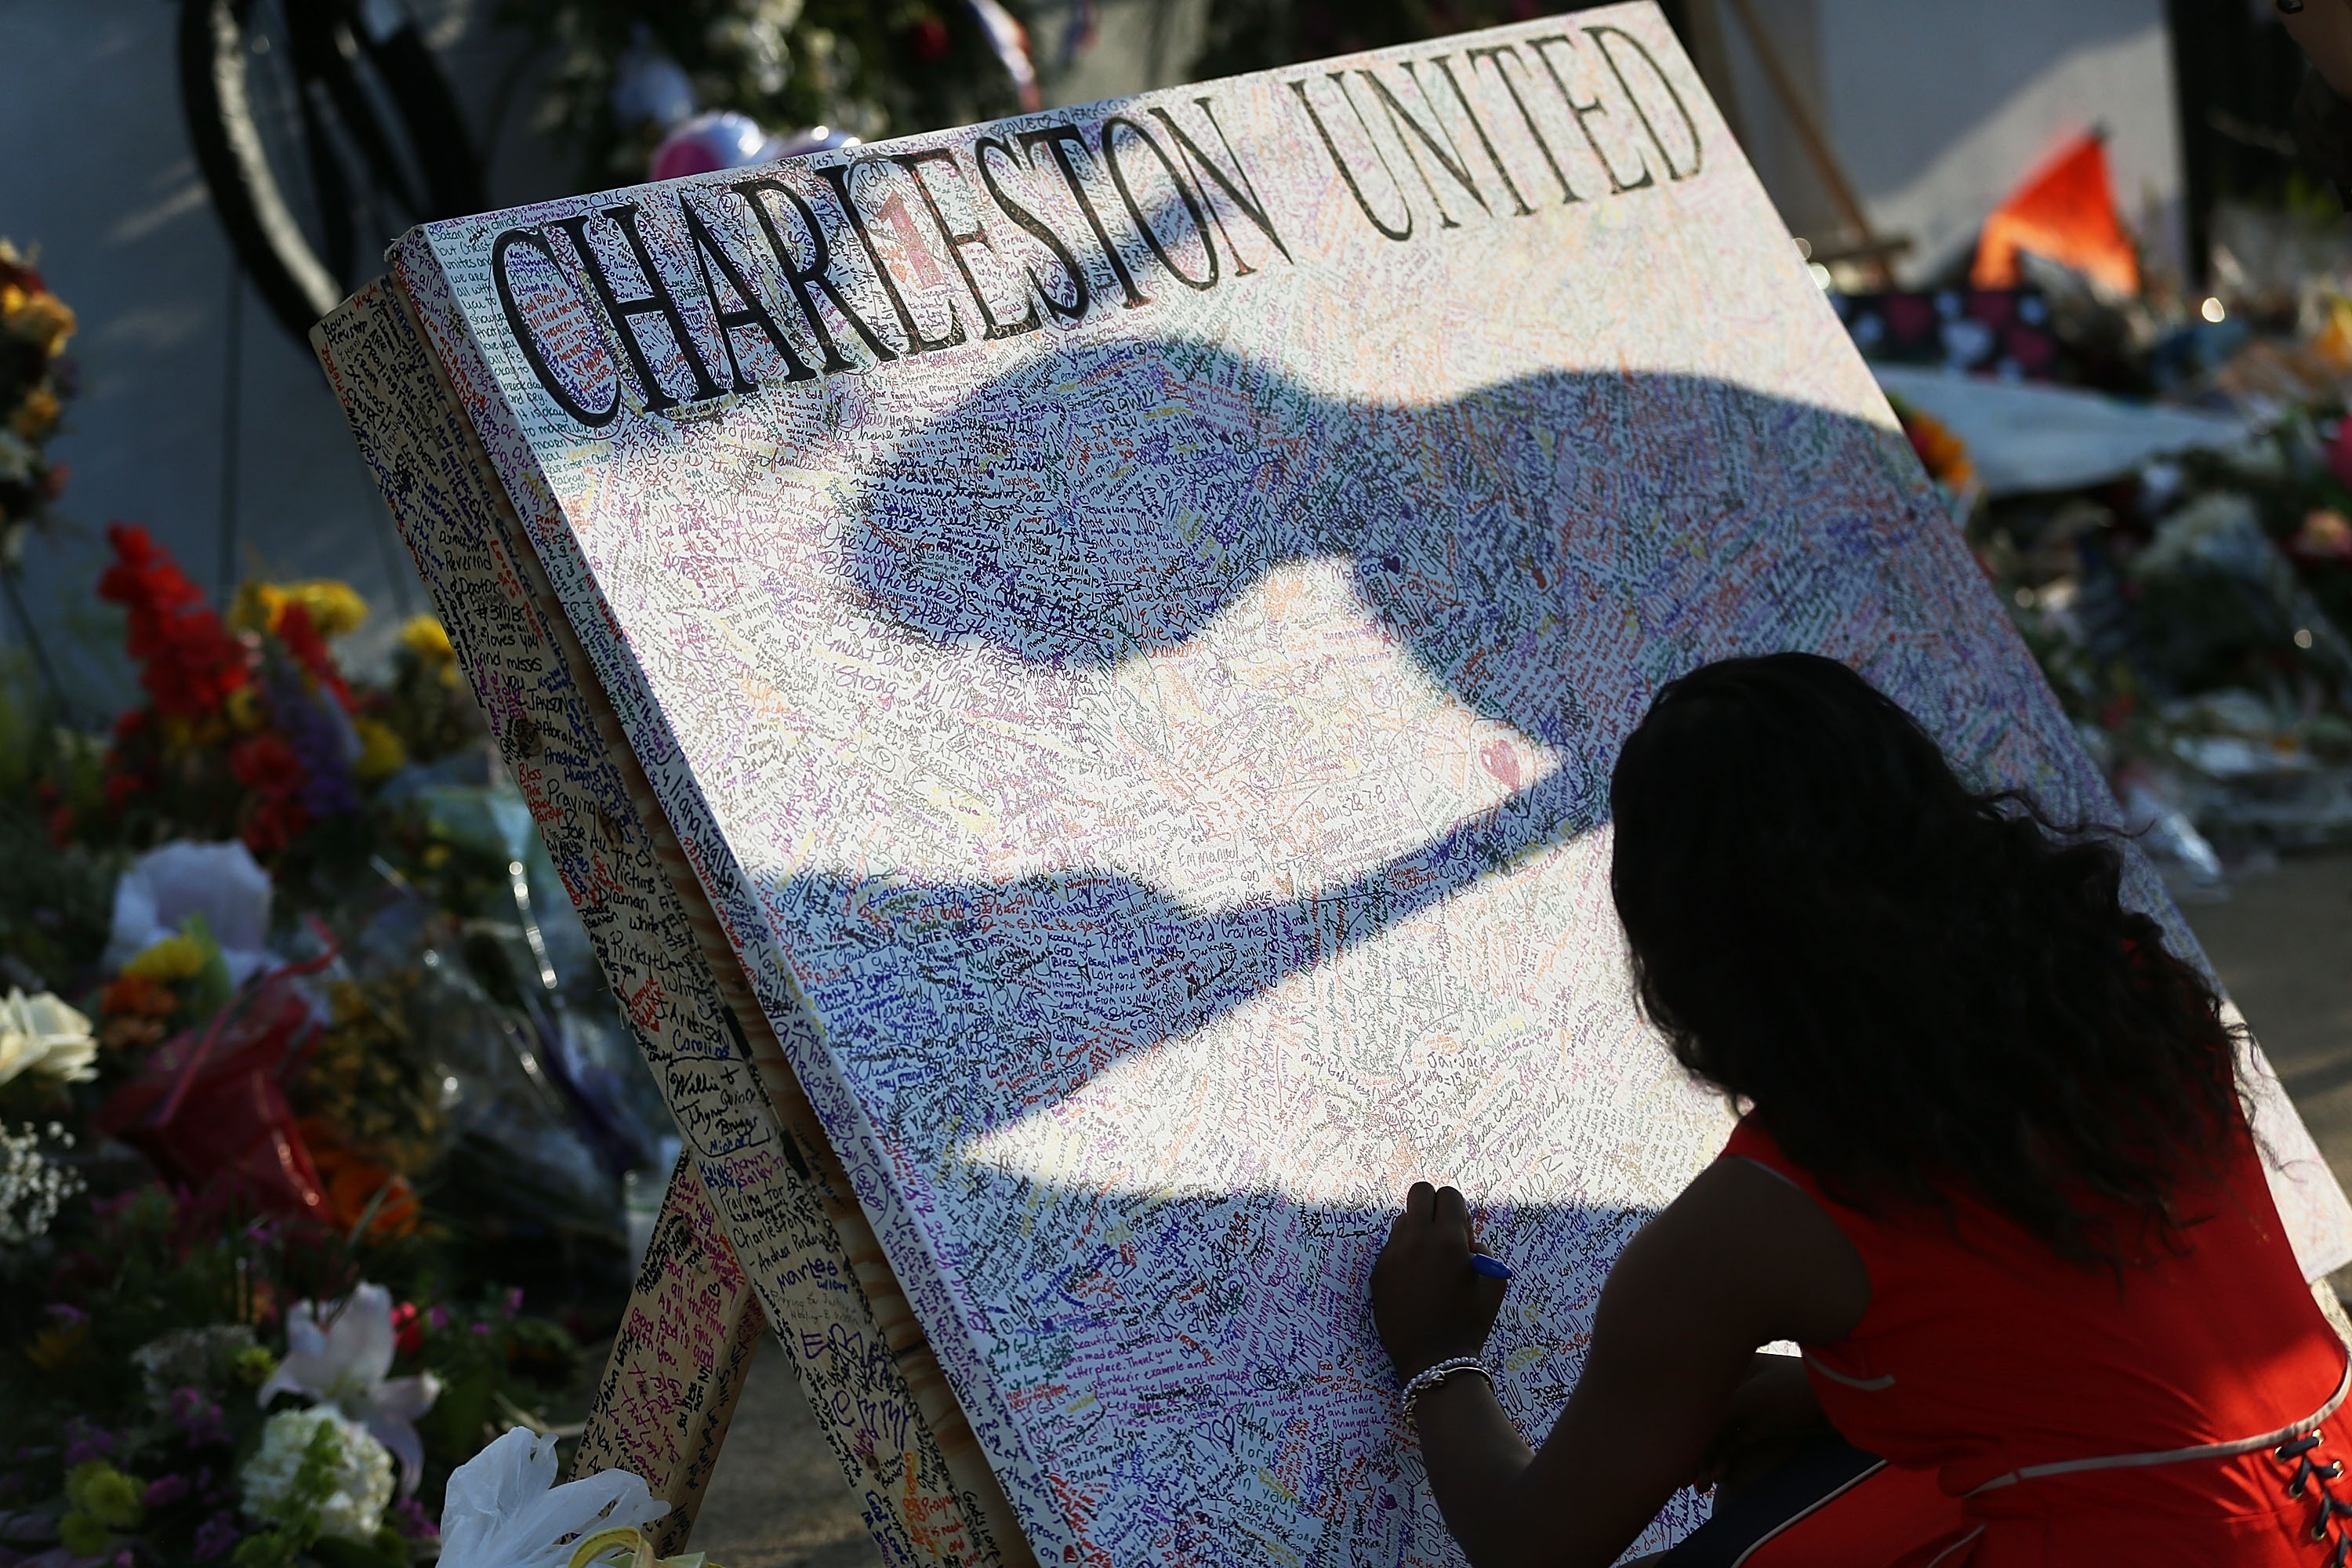 CHARLESTON, SC - JUNE 22:  Alana Simmons leaves a message on a board set up in front of the Emanuel African Methodist Episcopal Church after a mass shooting at the church killed nine people, on June 22, 2015. 21-year-old Dylann Roof is suspected of killing nine people during a prayer meeting in the church in Charleston, which is one of the nation's oldest black churches. (Photo by Joe Raedle/Getty Images)